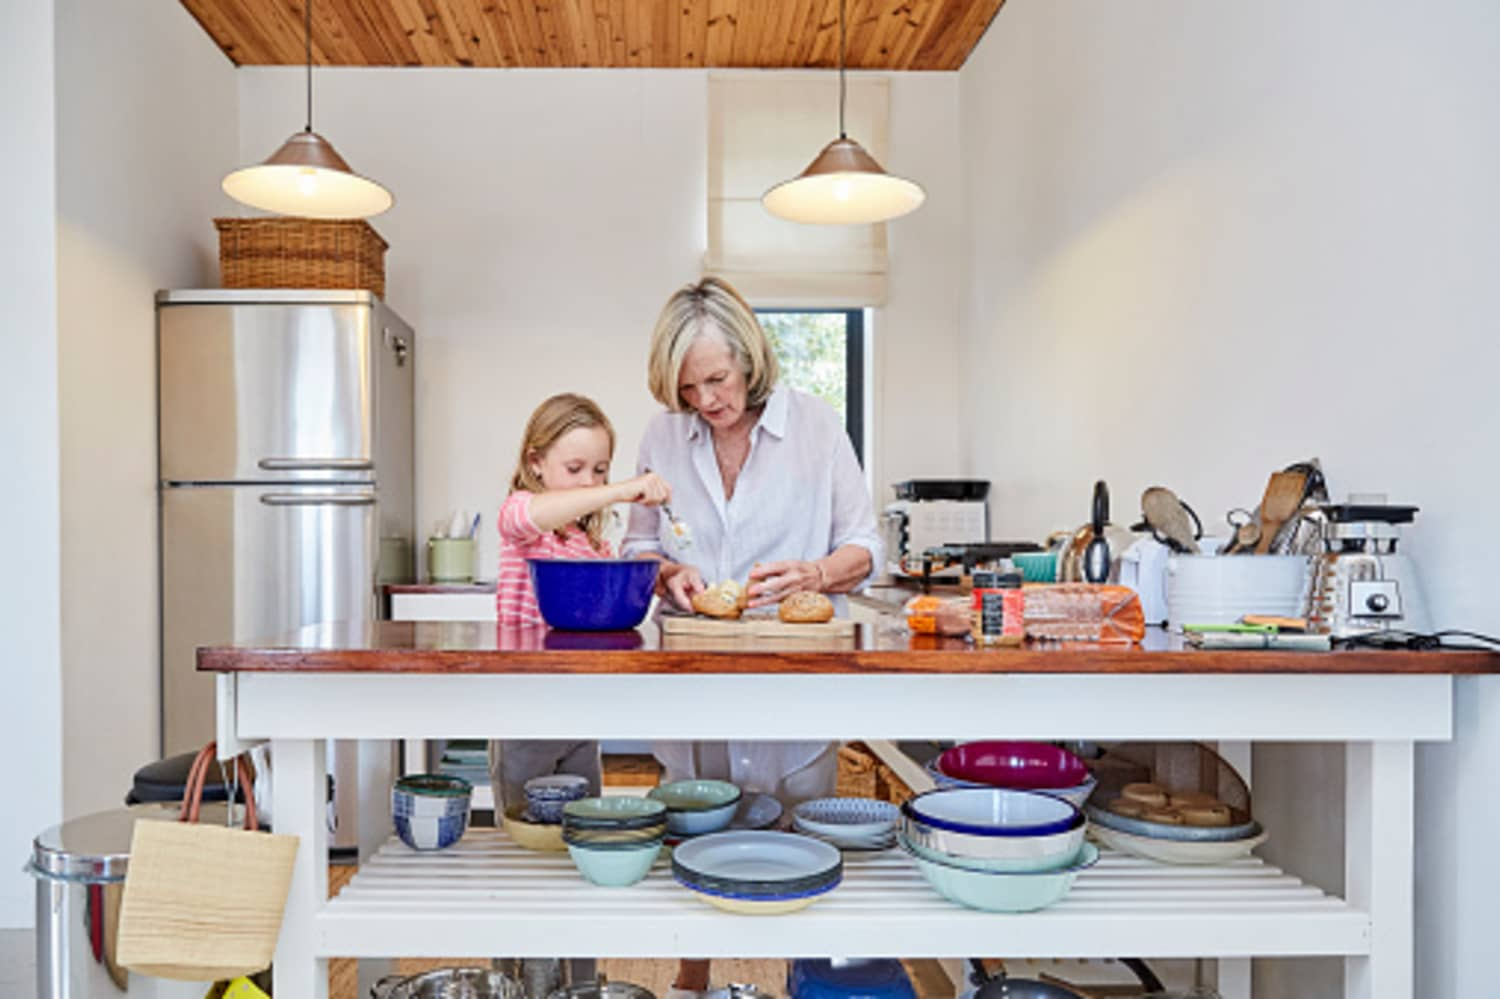 10 Brilliant Cleaning Tips You Should Steal from These French Grandmas